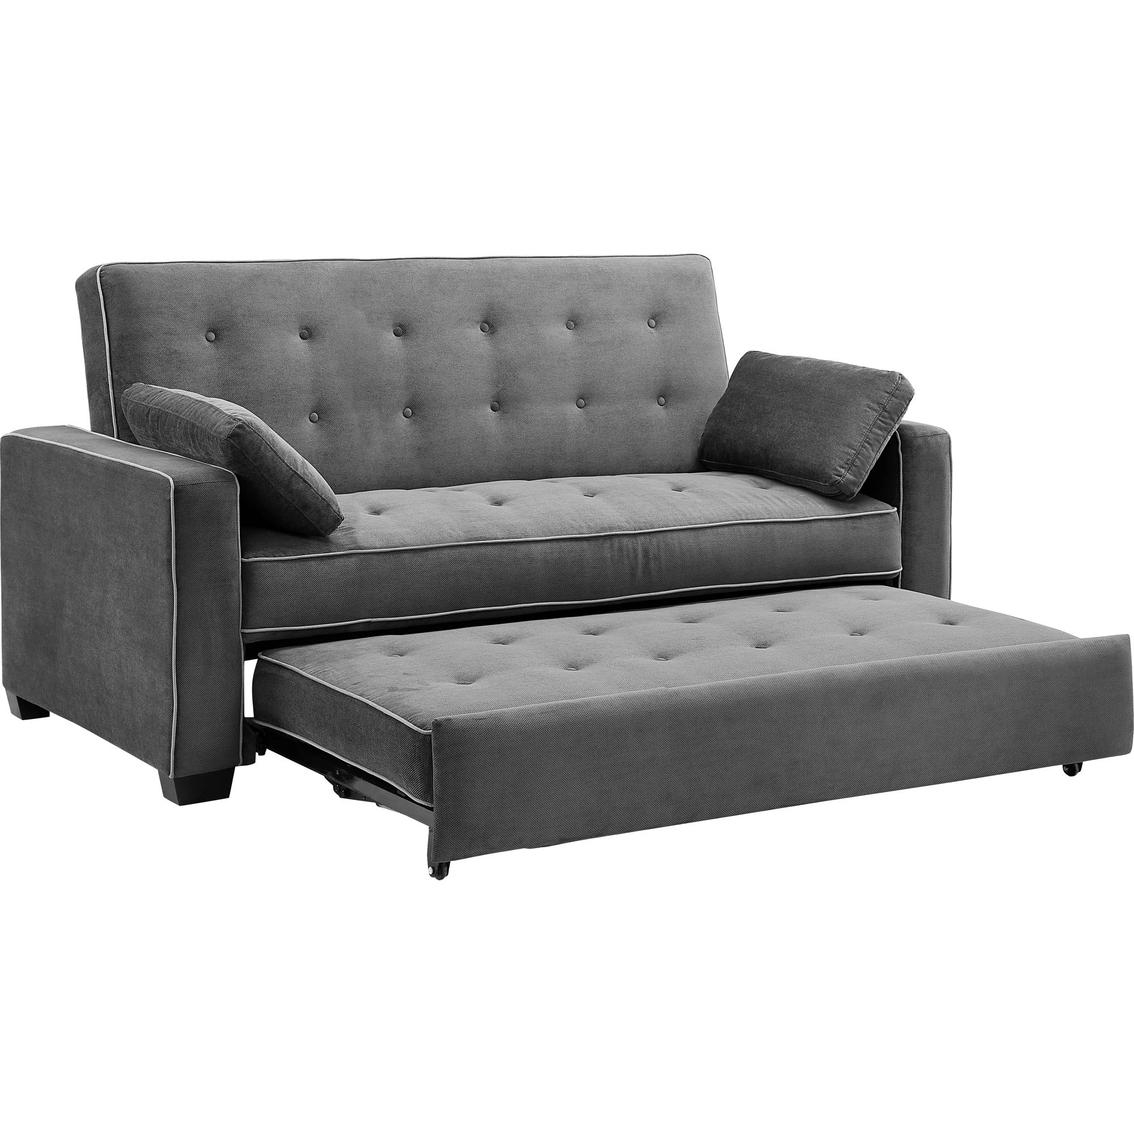 20 top convertible queen sofas sofa ideas. Black Bedroom Furniture Sets. Home Design Ideas